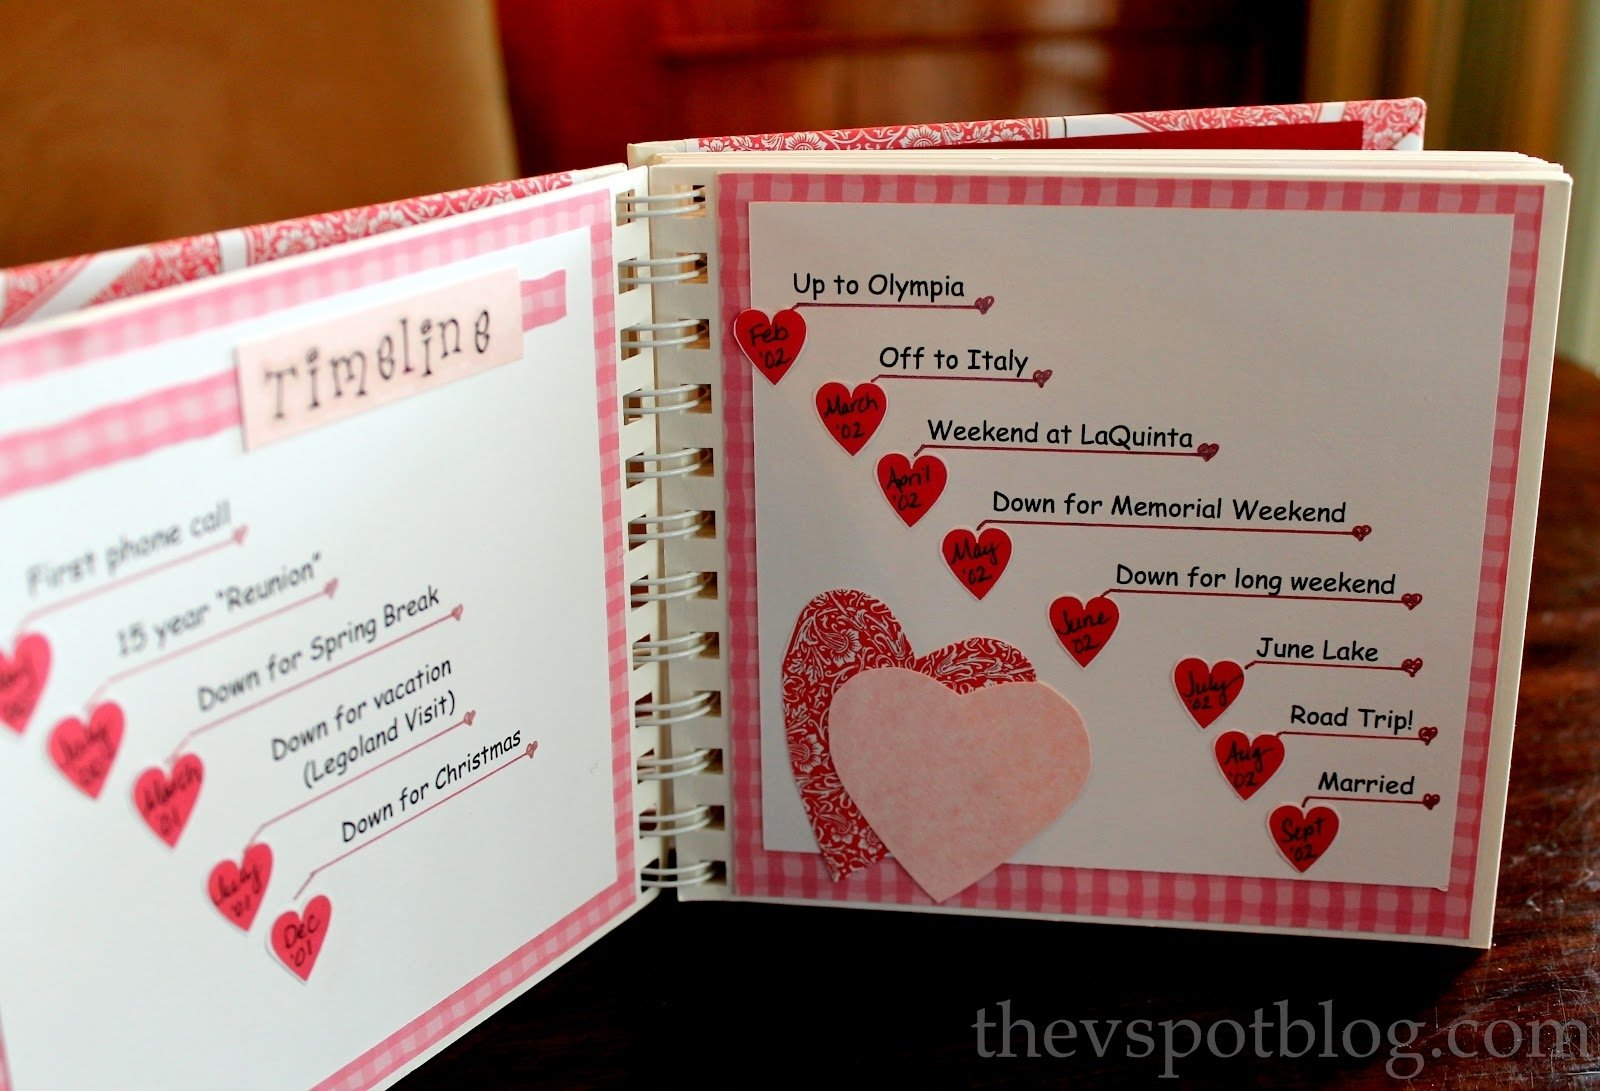 10 Attractive Cute Valentines Ideas For Him valentine day new creative ideas boyfriend husband him home art 17 2020